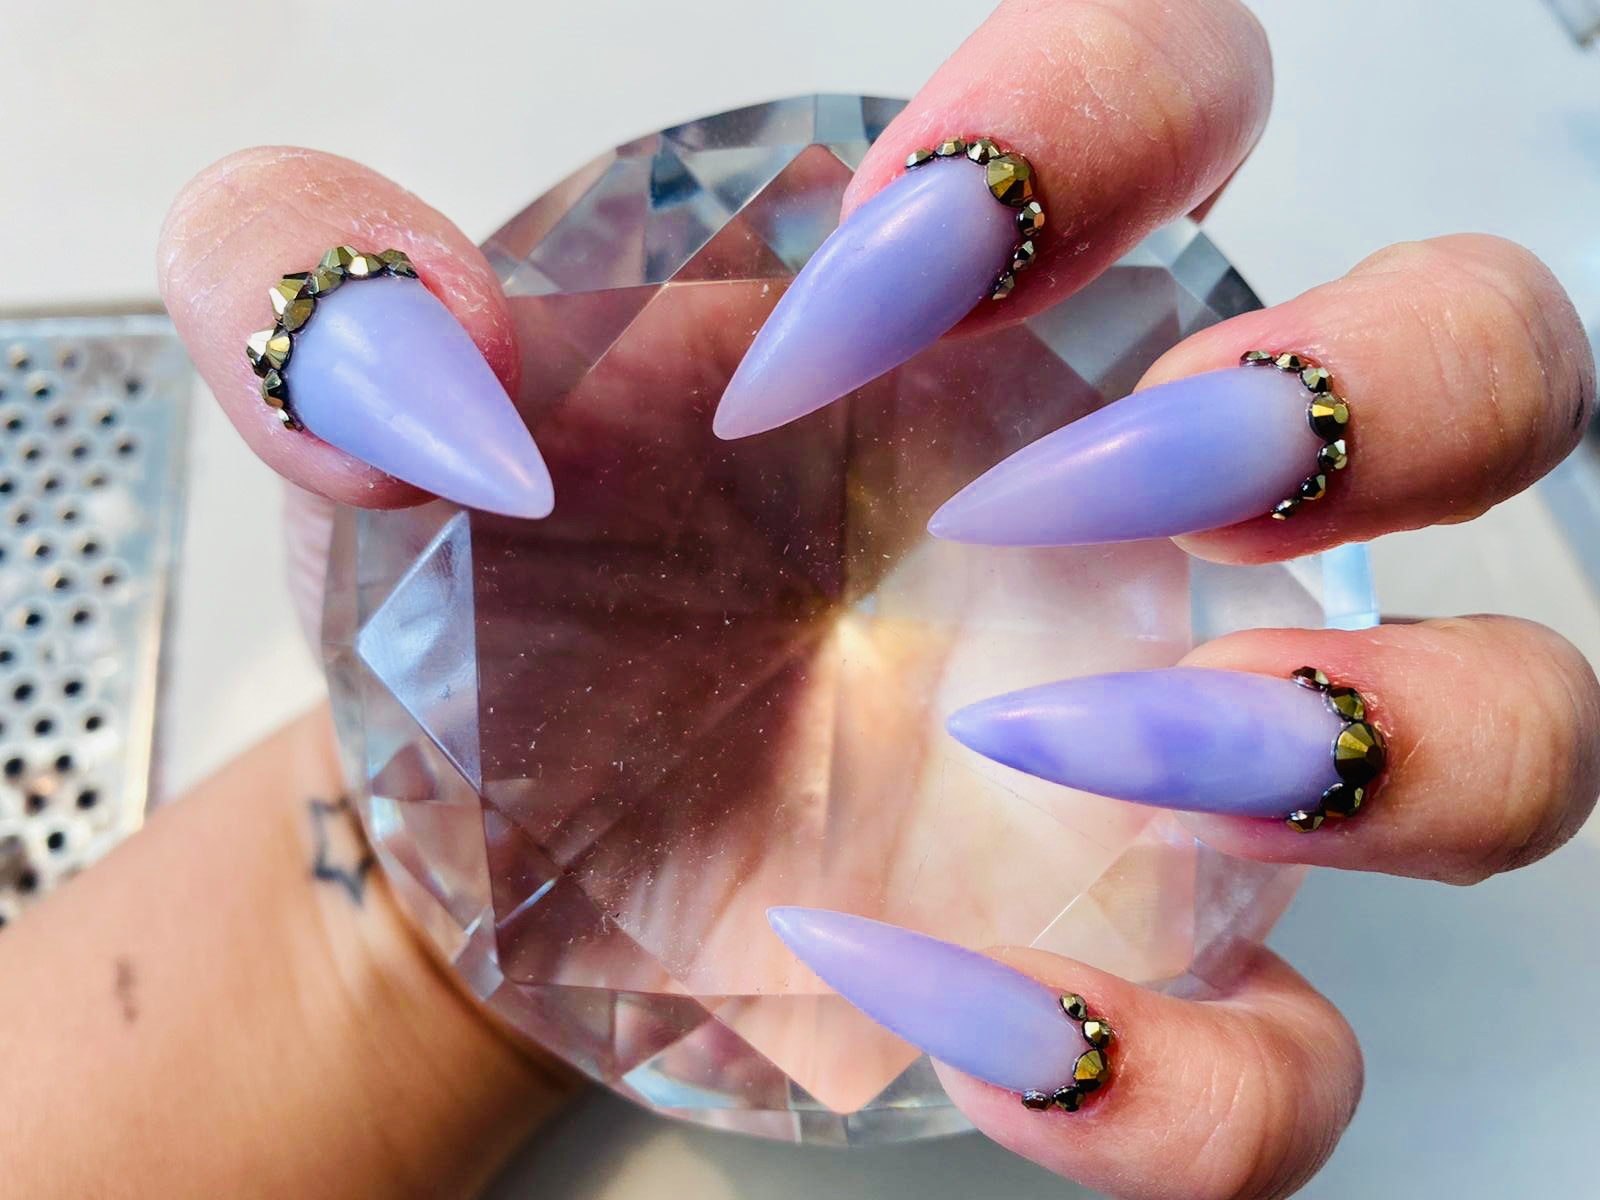 pointed-nail-extension-with-marble-design-101020-3